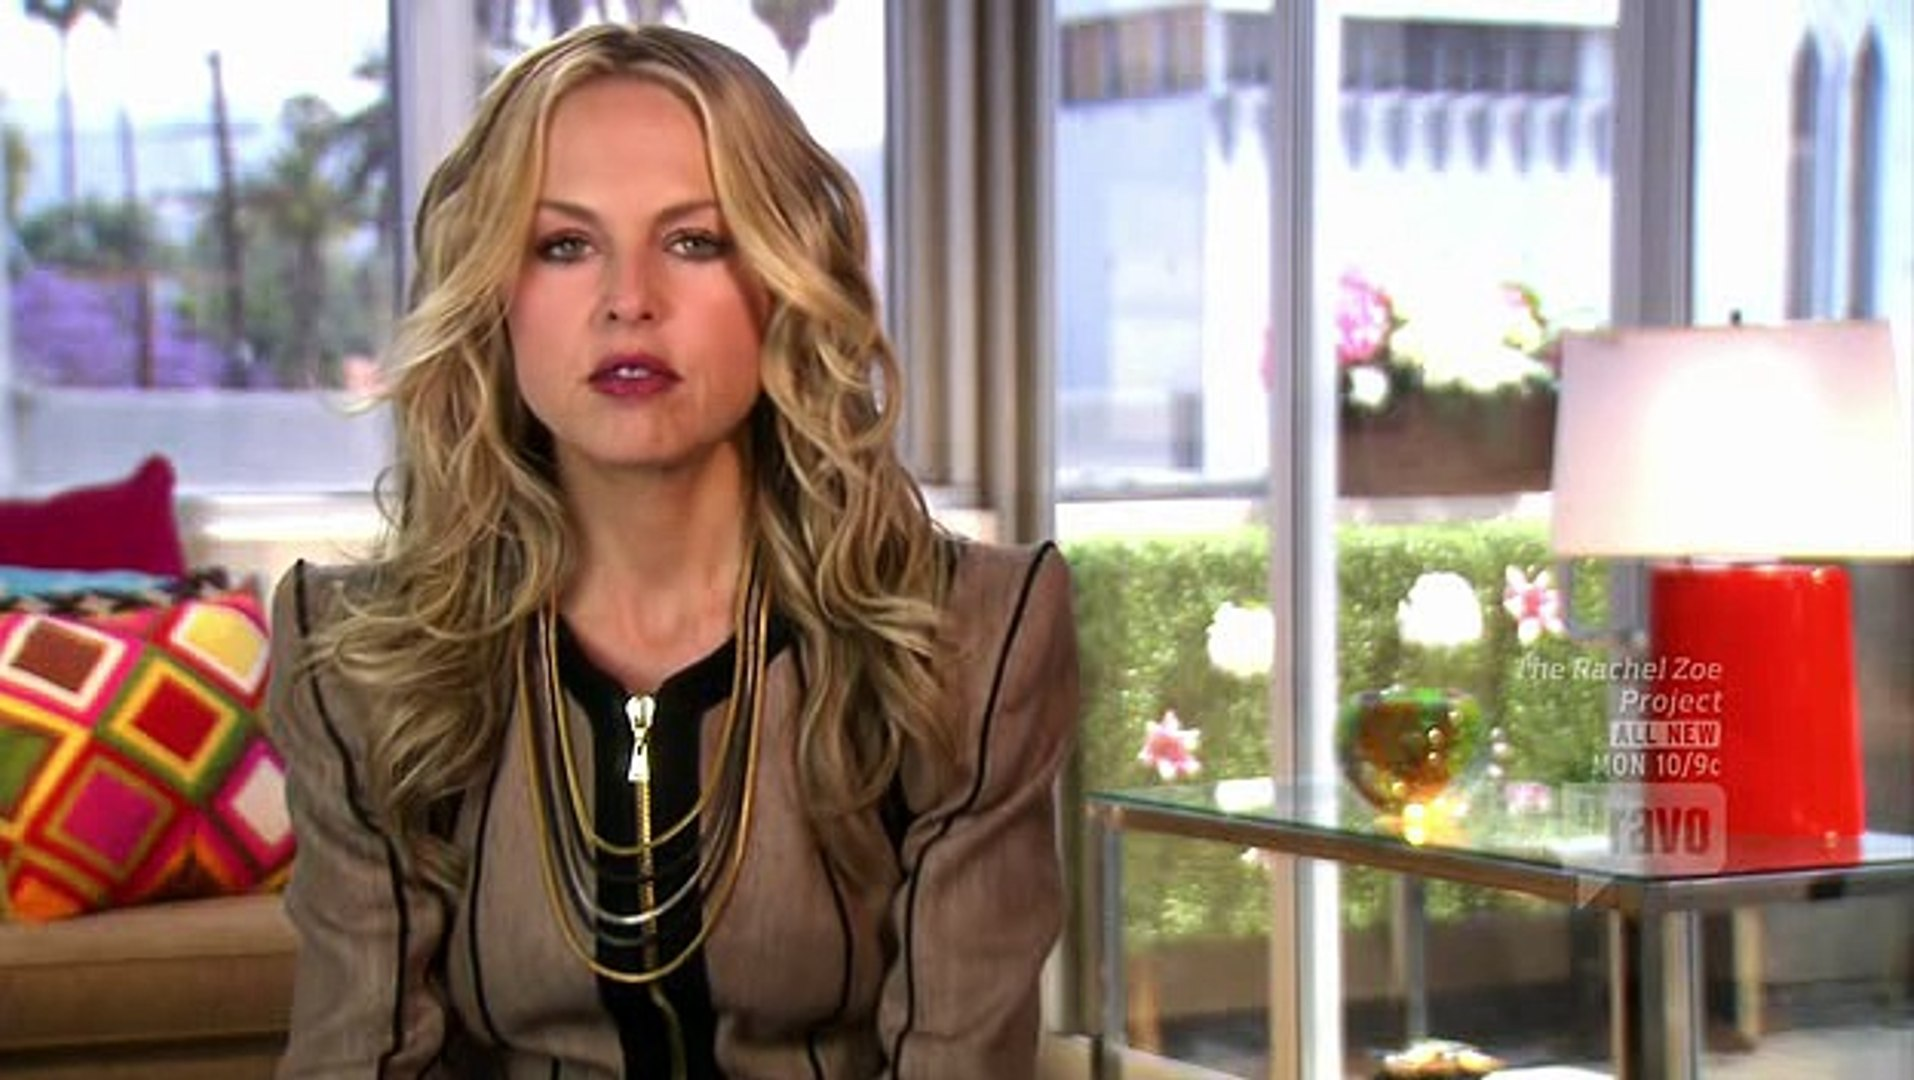 The Rachel Zoe Project Season 02 Episode 04 'pin Thin' And Pissed Off